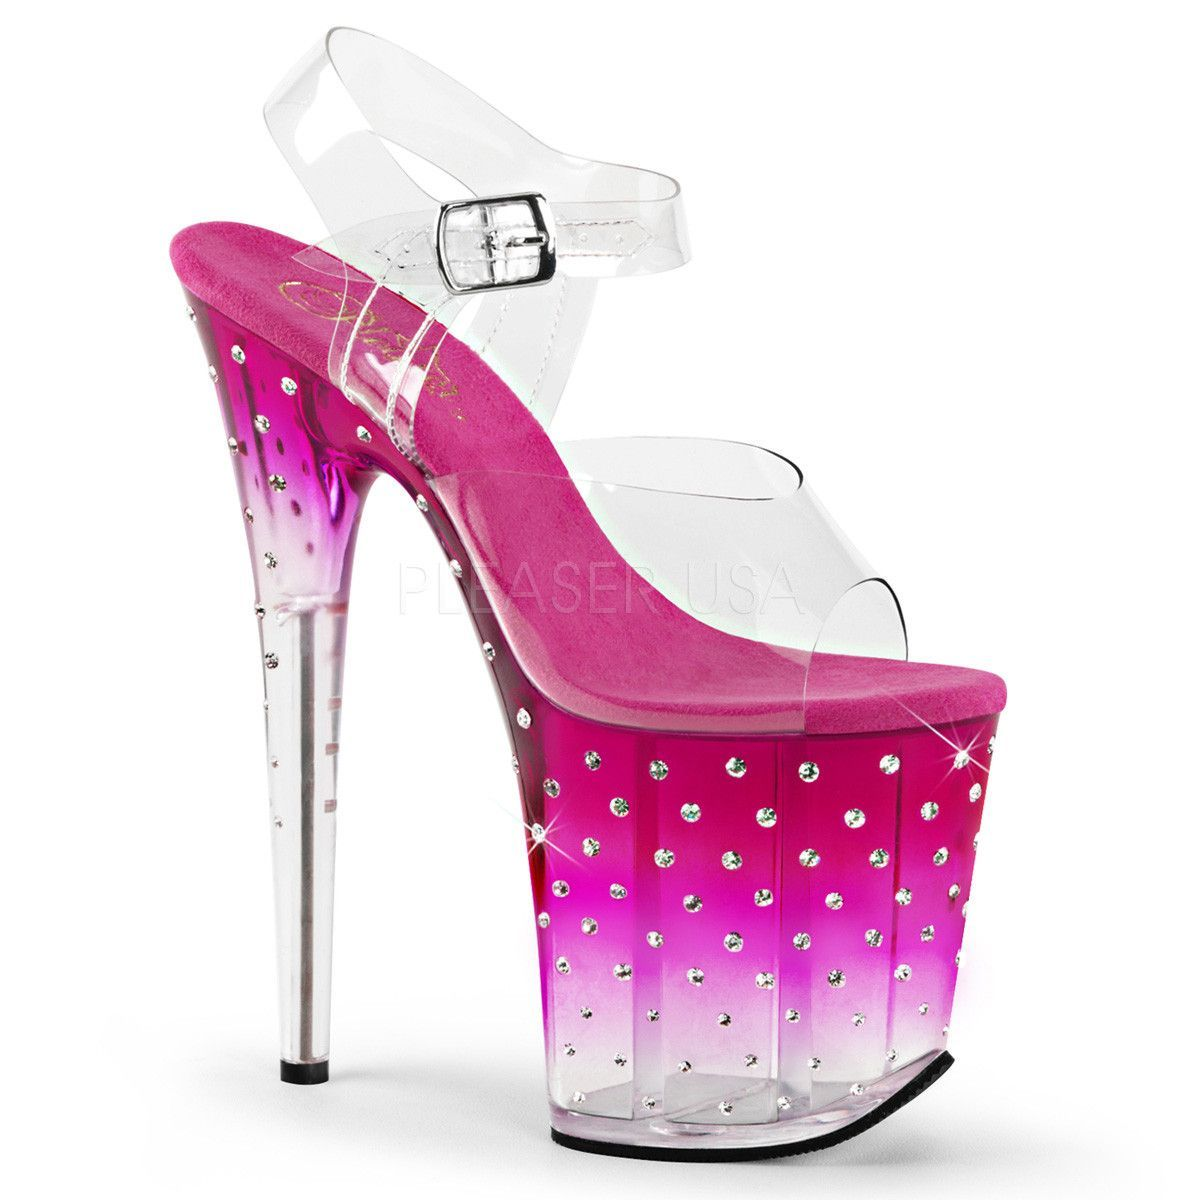 Pleaser STARDUST-808T Clear Ankle Strap Sandals With Pink-Clear Platform